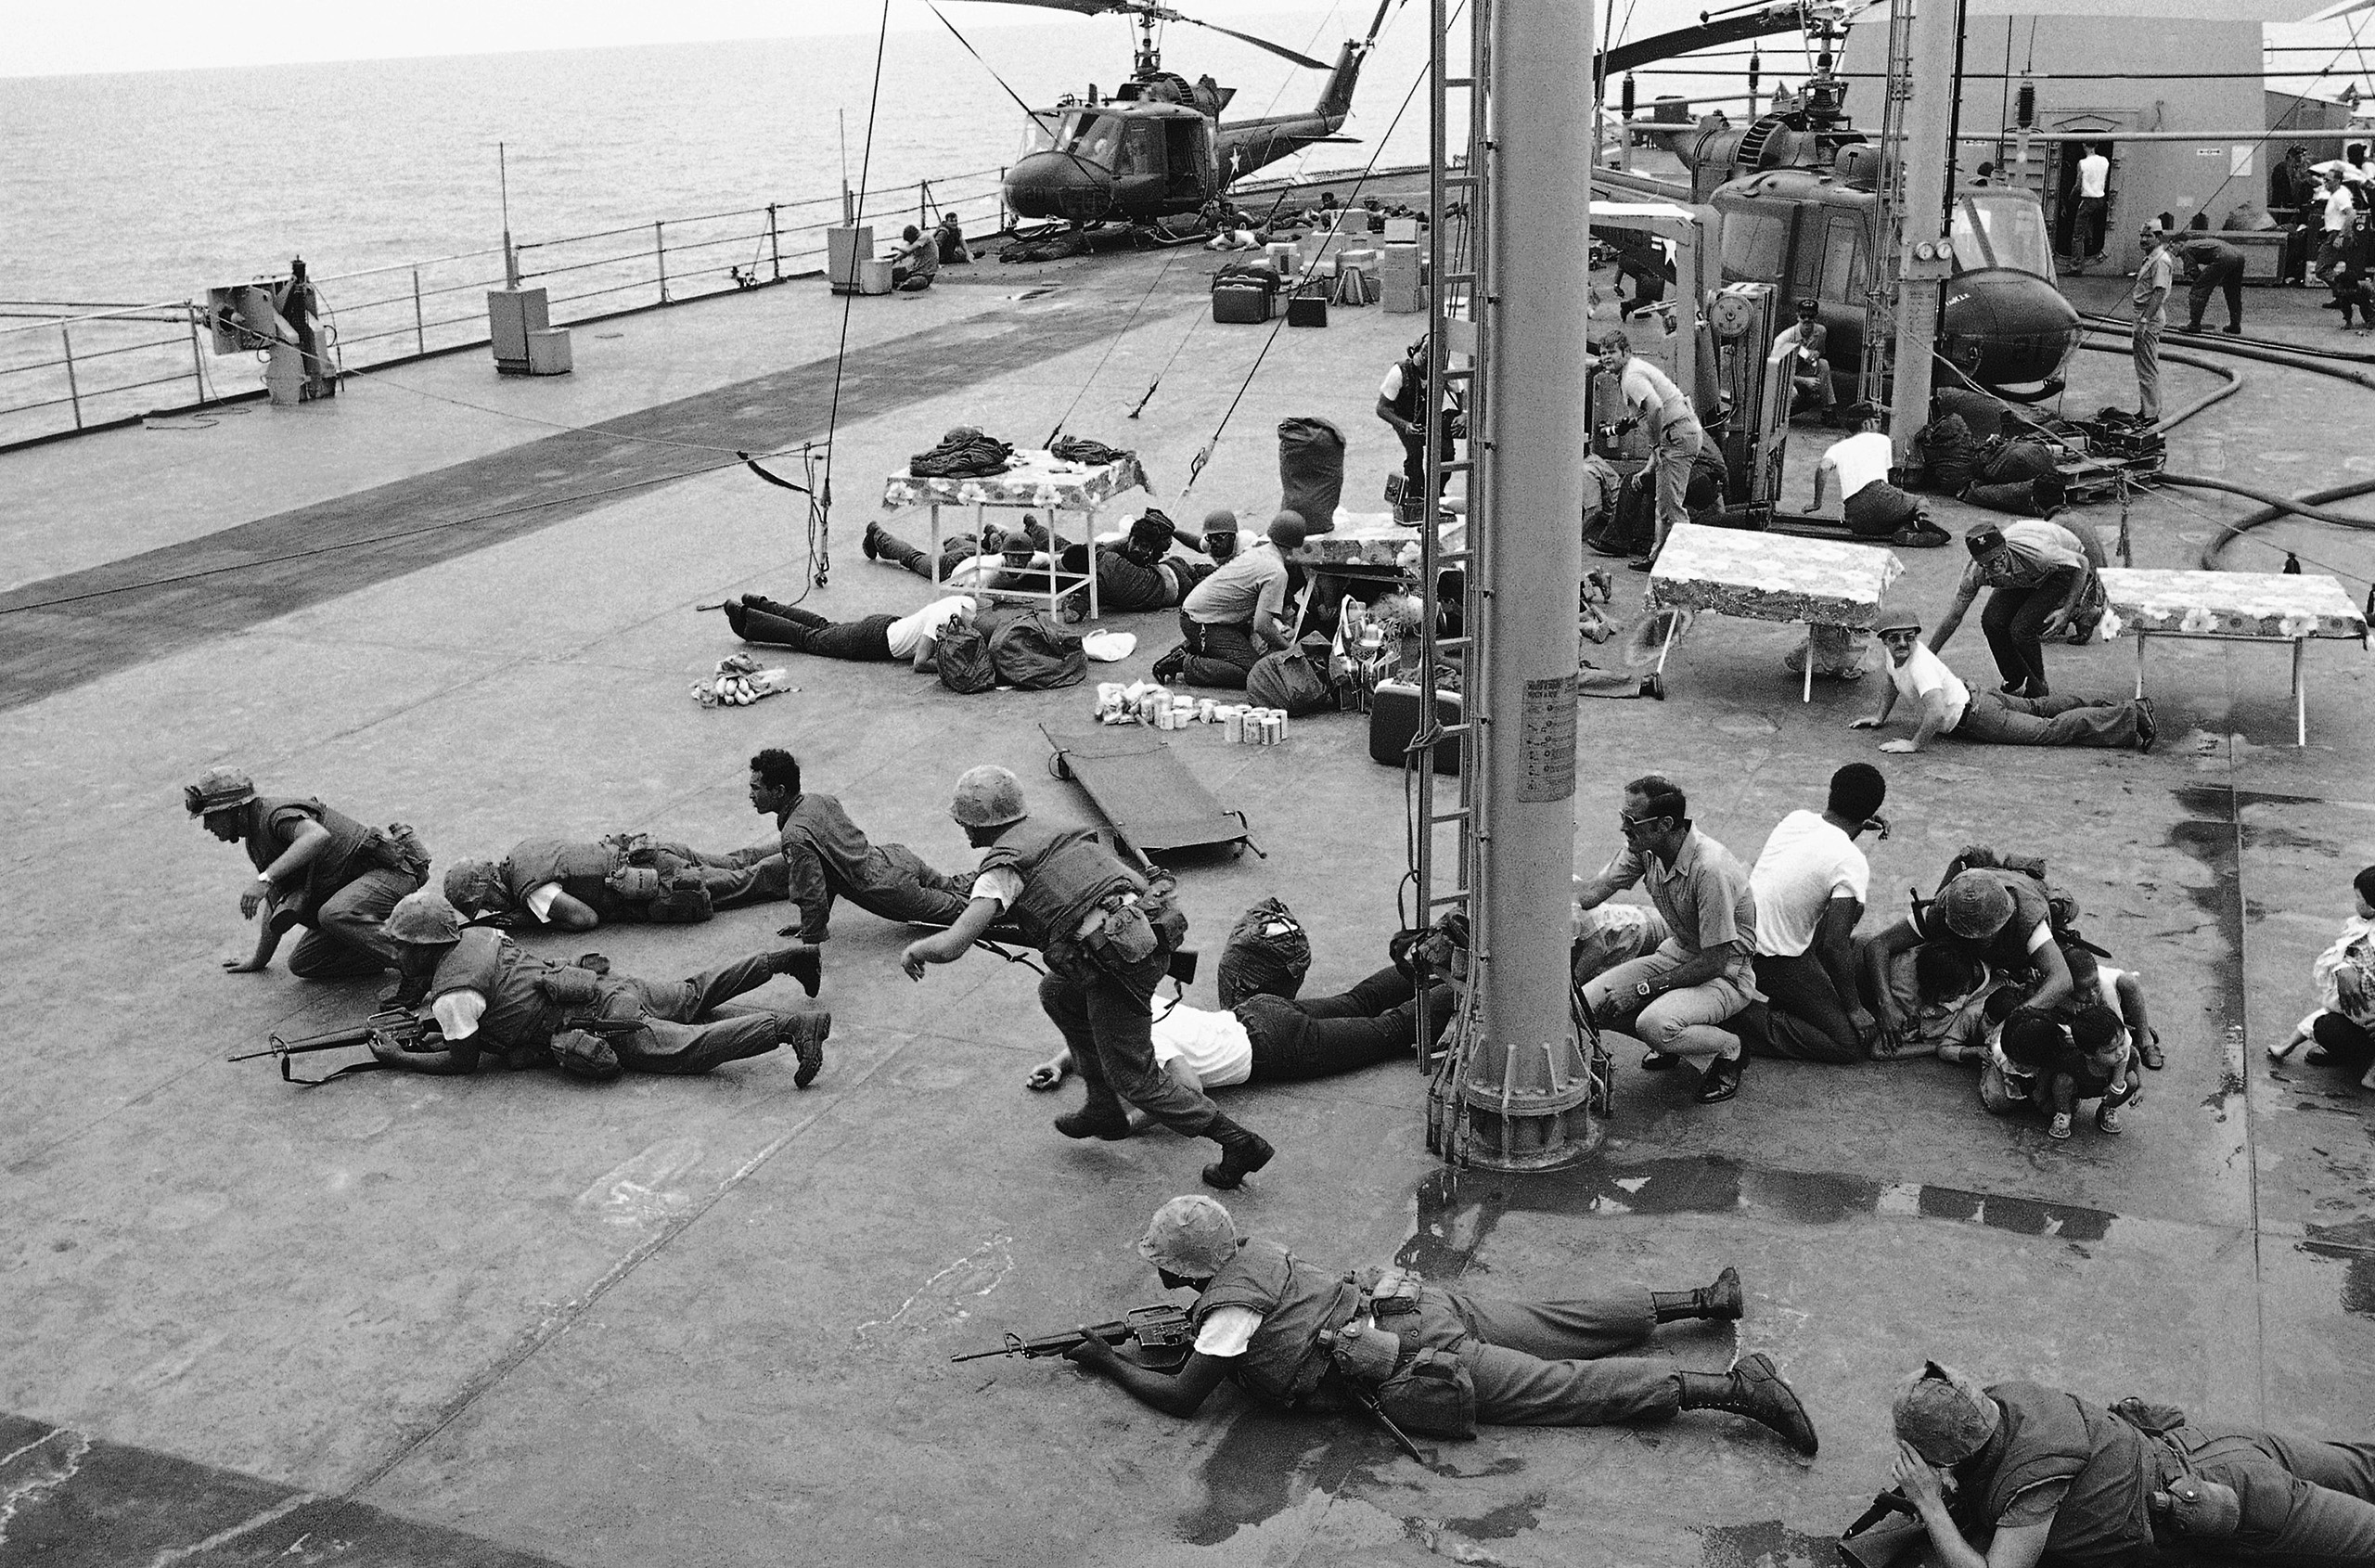 U.S. Marines hit the deck of the USS Blue Ridge to dodge flying metal from a South Vietnamese helicopter that crashed on the deck of the ship. One pilot had dropped his helicopter on the blade of another, and chunks of metal ripped through the air. The top helicopter, with its load of women and children, nearly toppled into the sea, but they were rescued without injury.